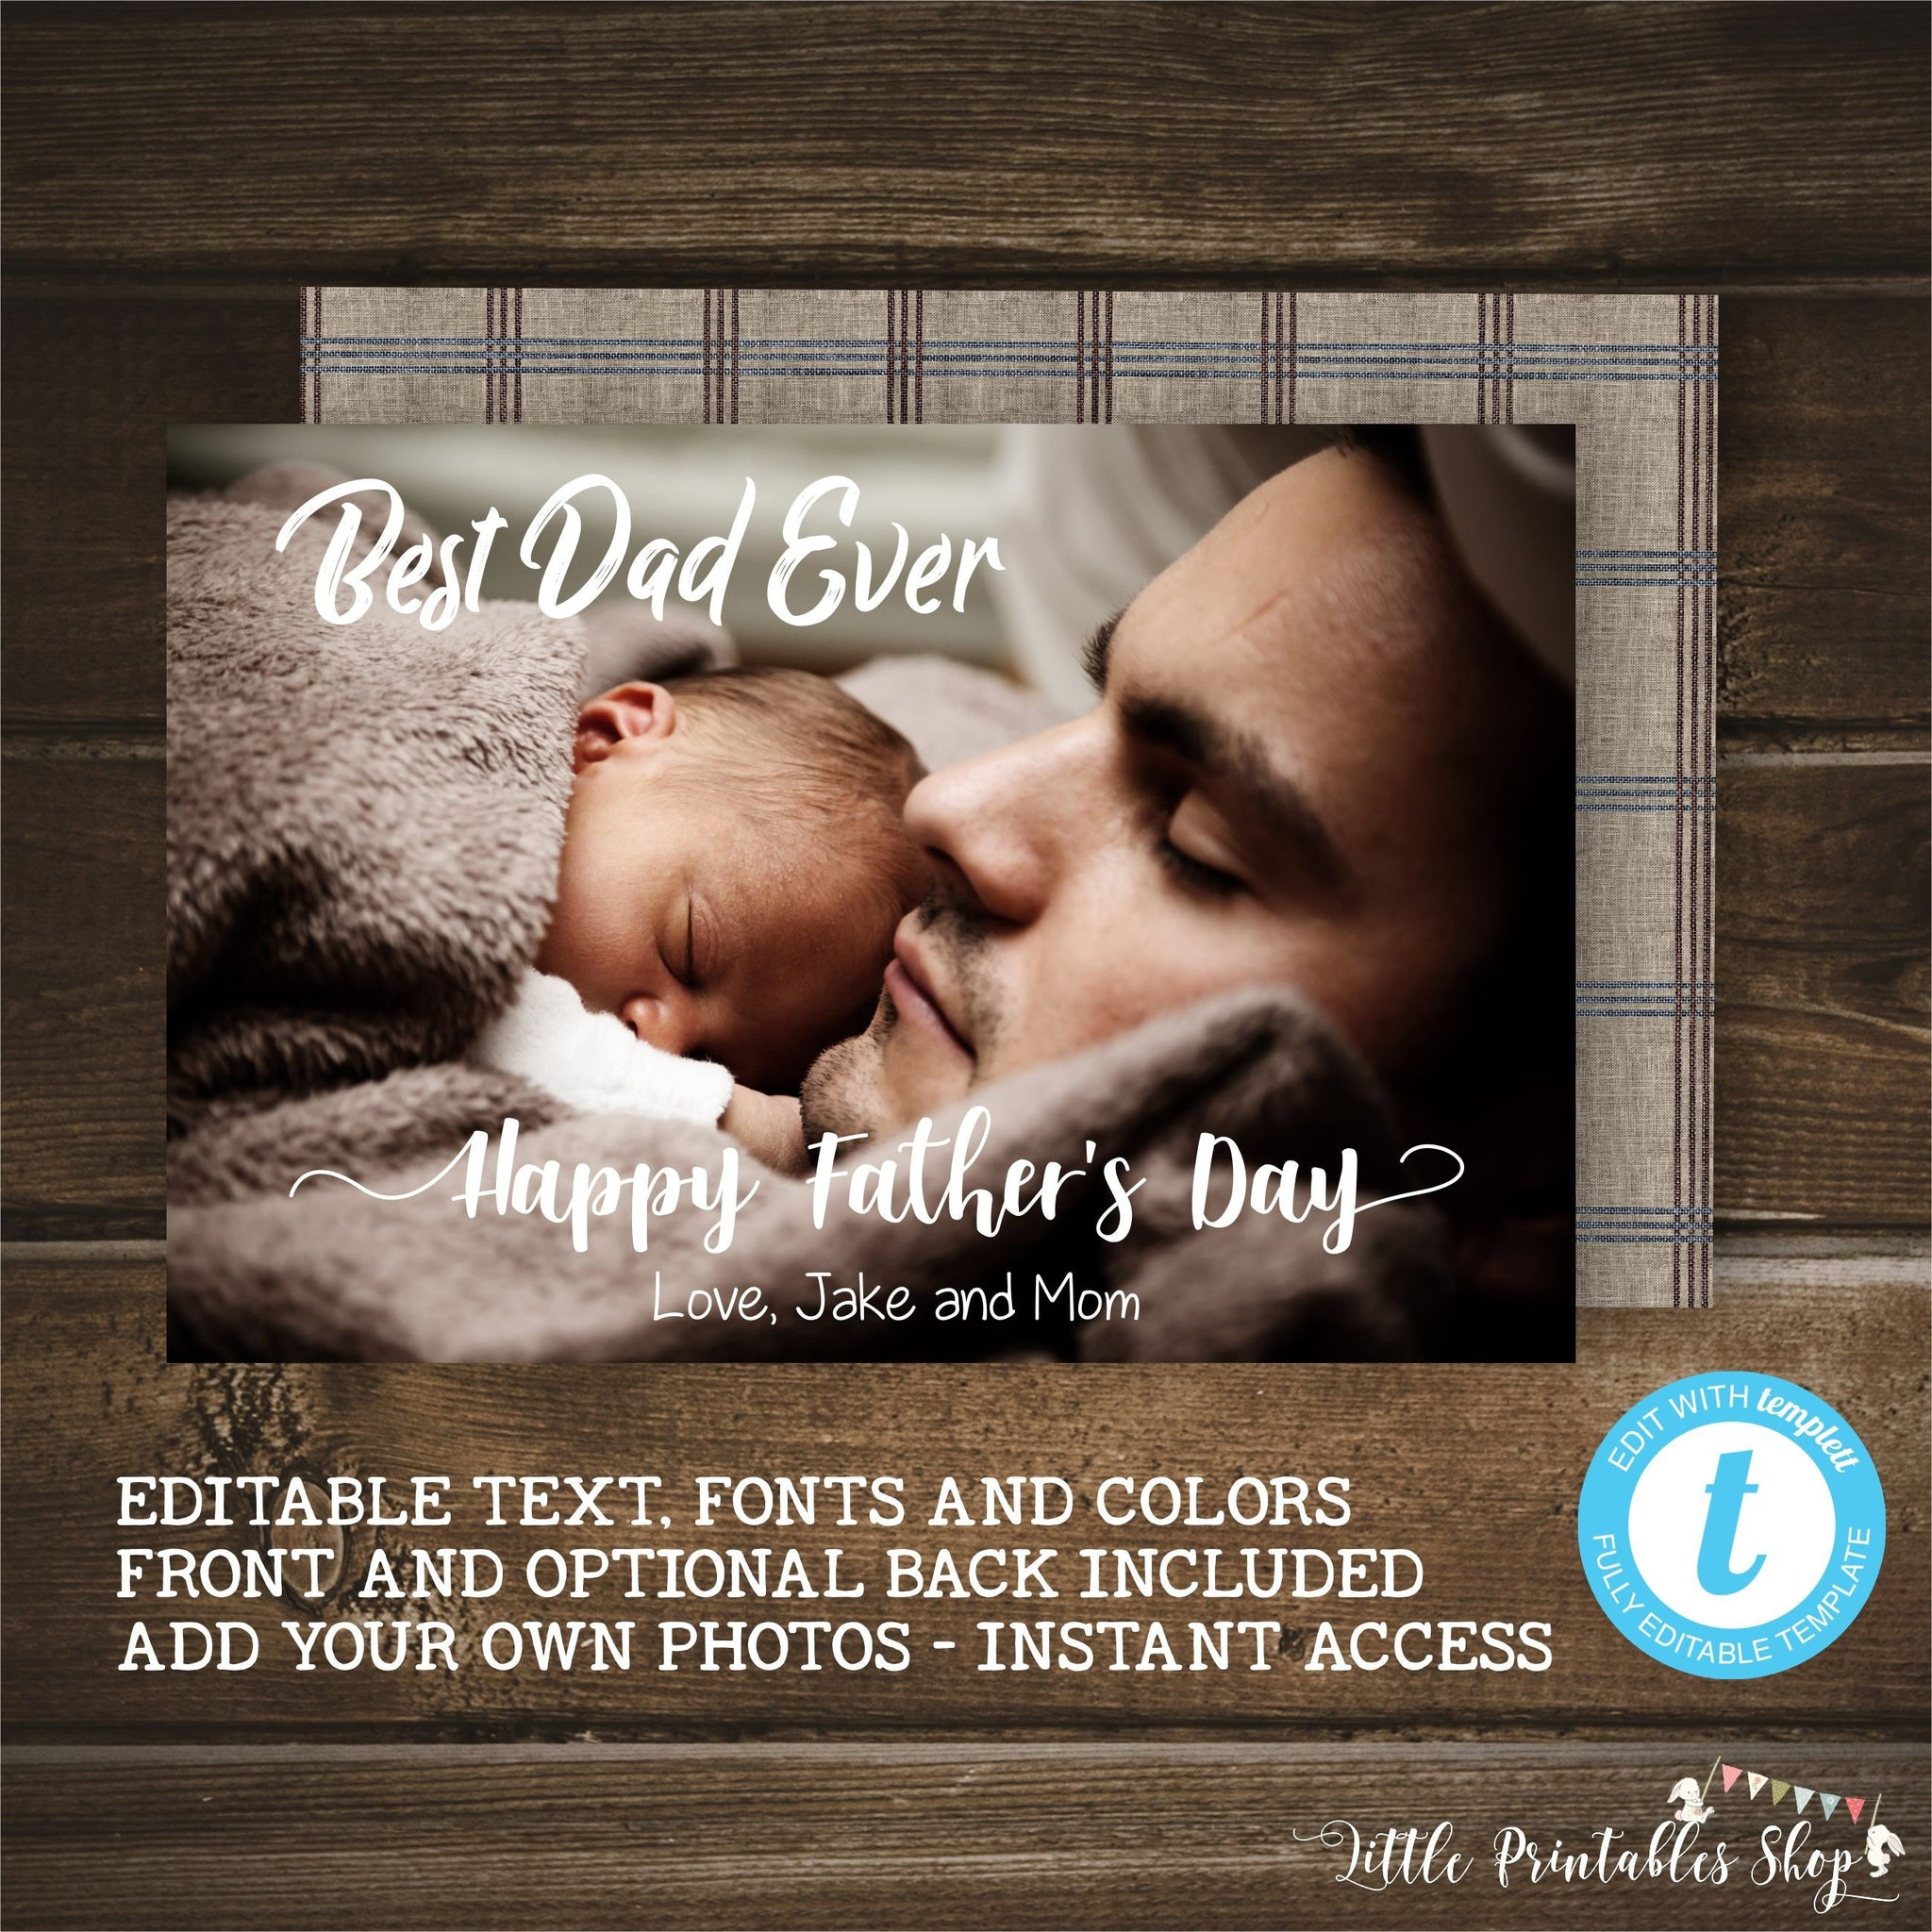 Editable Fathers Day Photo Card  Editable Fathers Day Photo Card, Father's Day, Little Printables Shop, Little Printables Shop- Little Printables Shop